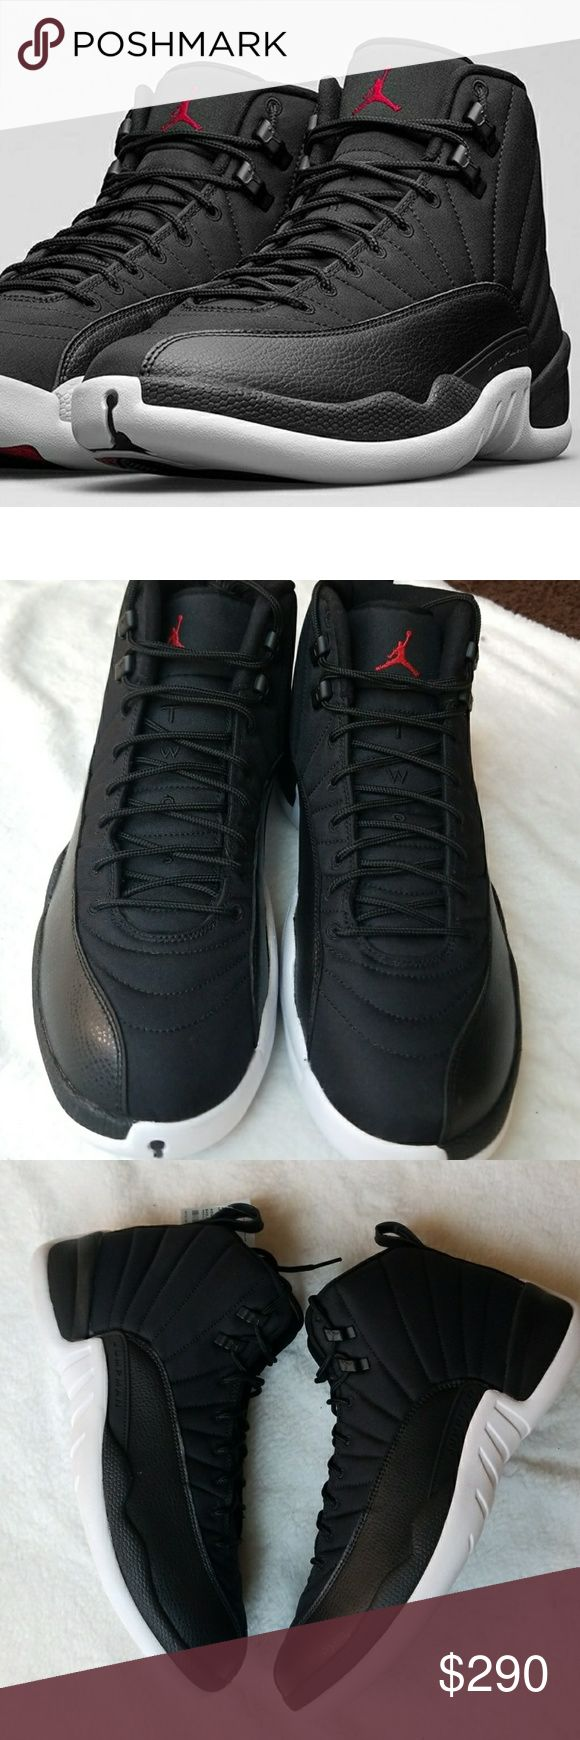 NWOB Air Jordan 12s Black Nylon (Neoprene) NWOB Air Jordan 12s Black Nylon (Neoprene) 100% Authentic. 100% DeadStock  Reasonable Offers Only! Comes with no box Size 13  Want to save more? Bundle and save on shipping. 🌟 Smoke free home 🌟 Reasonable Offers Accepted  🌟 All items are recorded in condition listed prior to shipping Air Jordan Shoes Sneakers